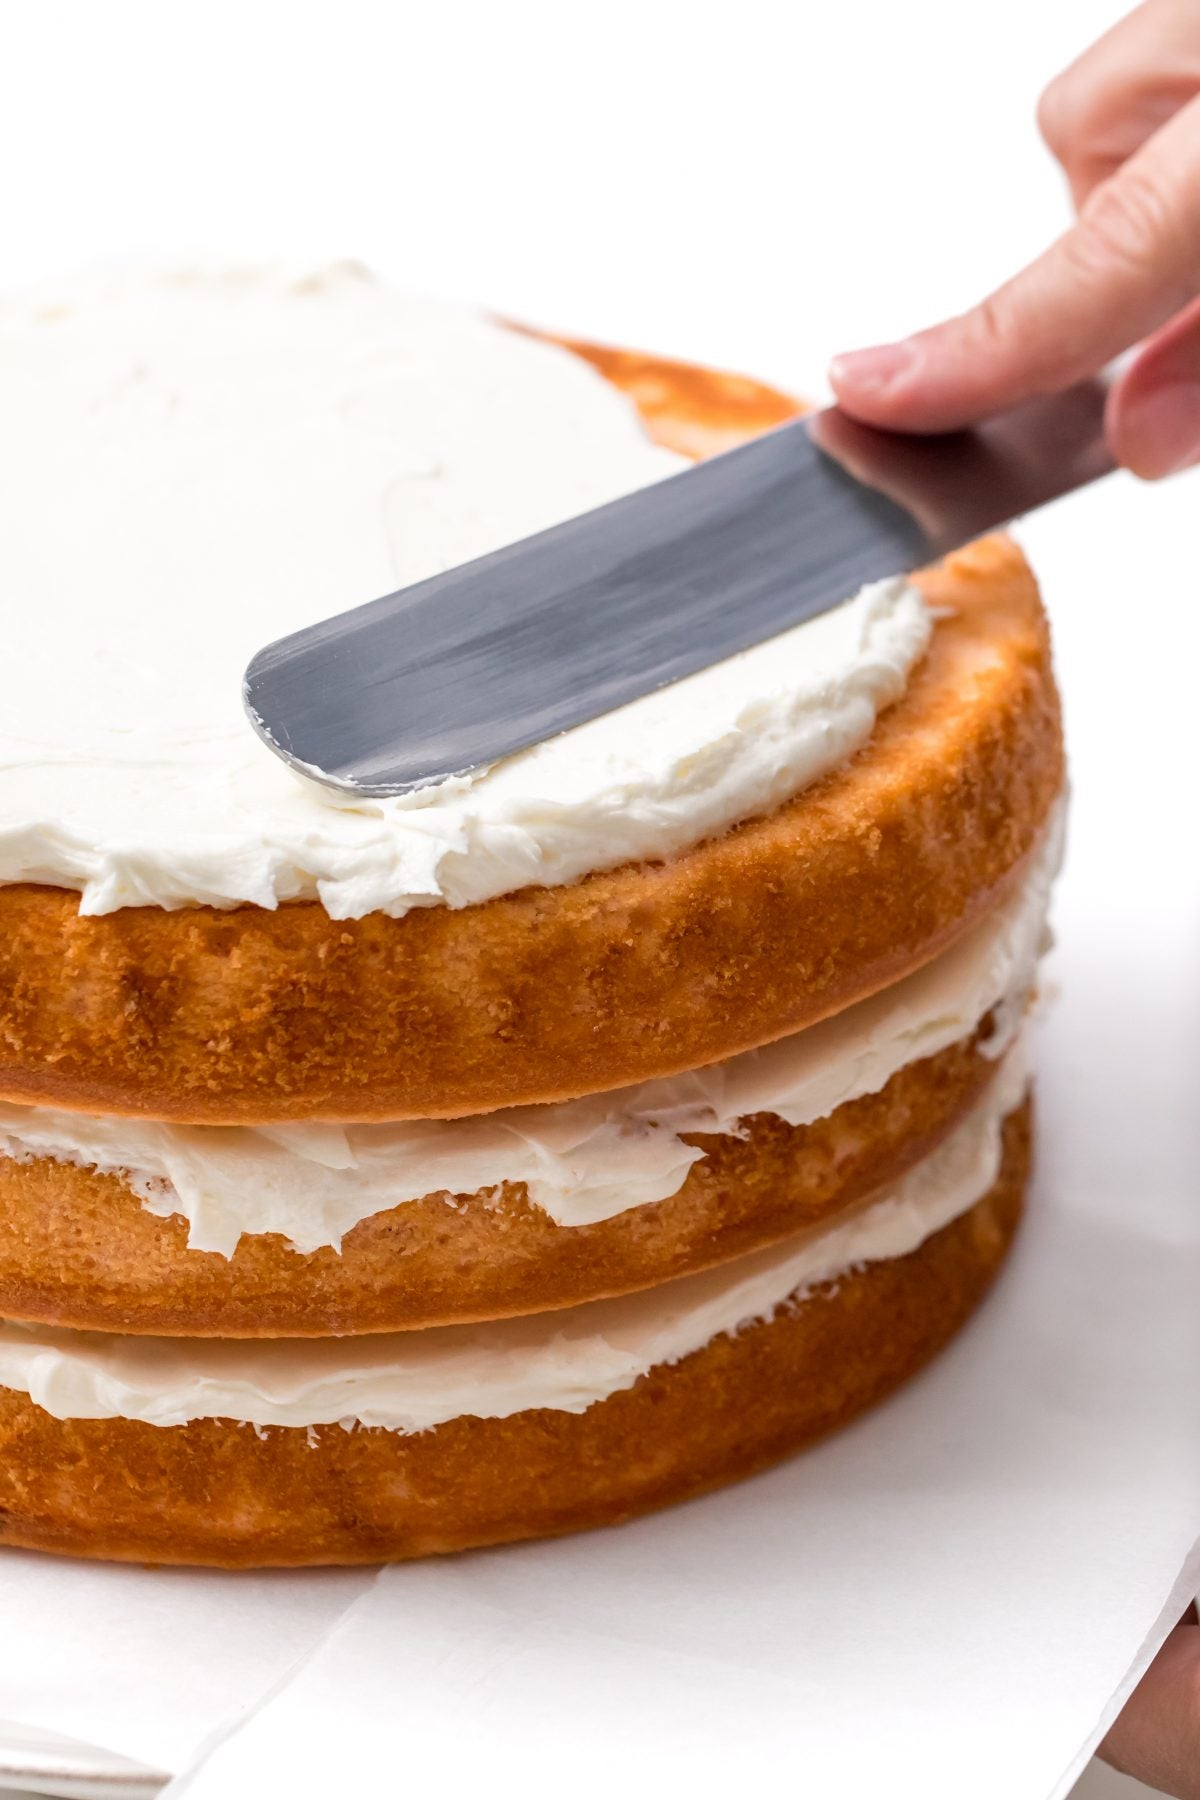 DISTRIBUTE THE ICING EVEN OVER THE LAST LAYER OF CAKE